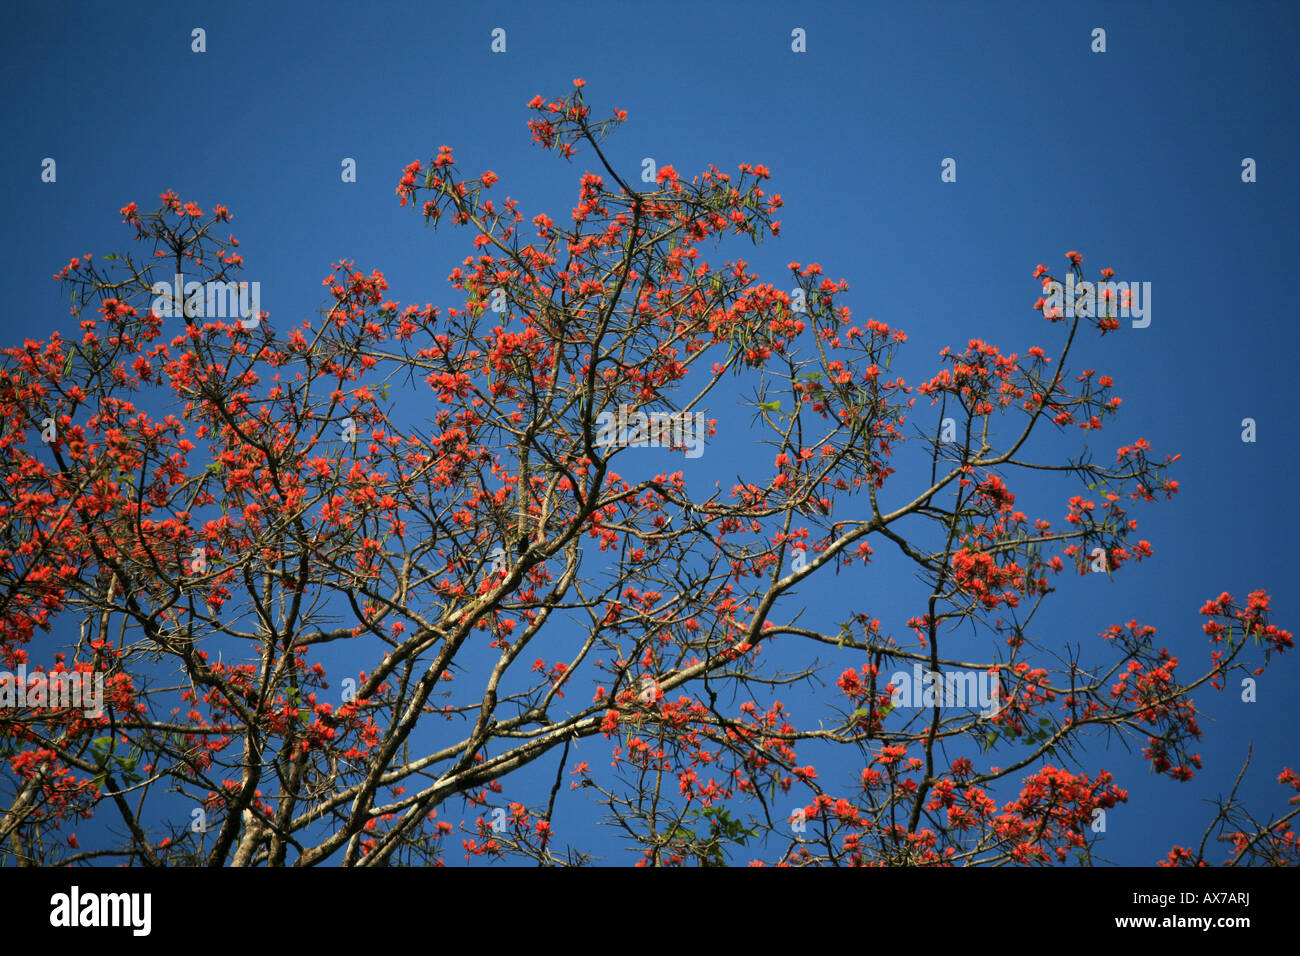 Colorful flowers on tree in the Darien national park Republic of Panama Stock Photo